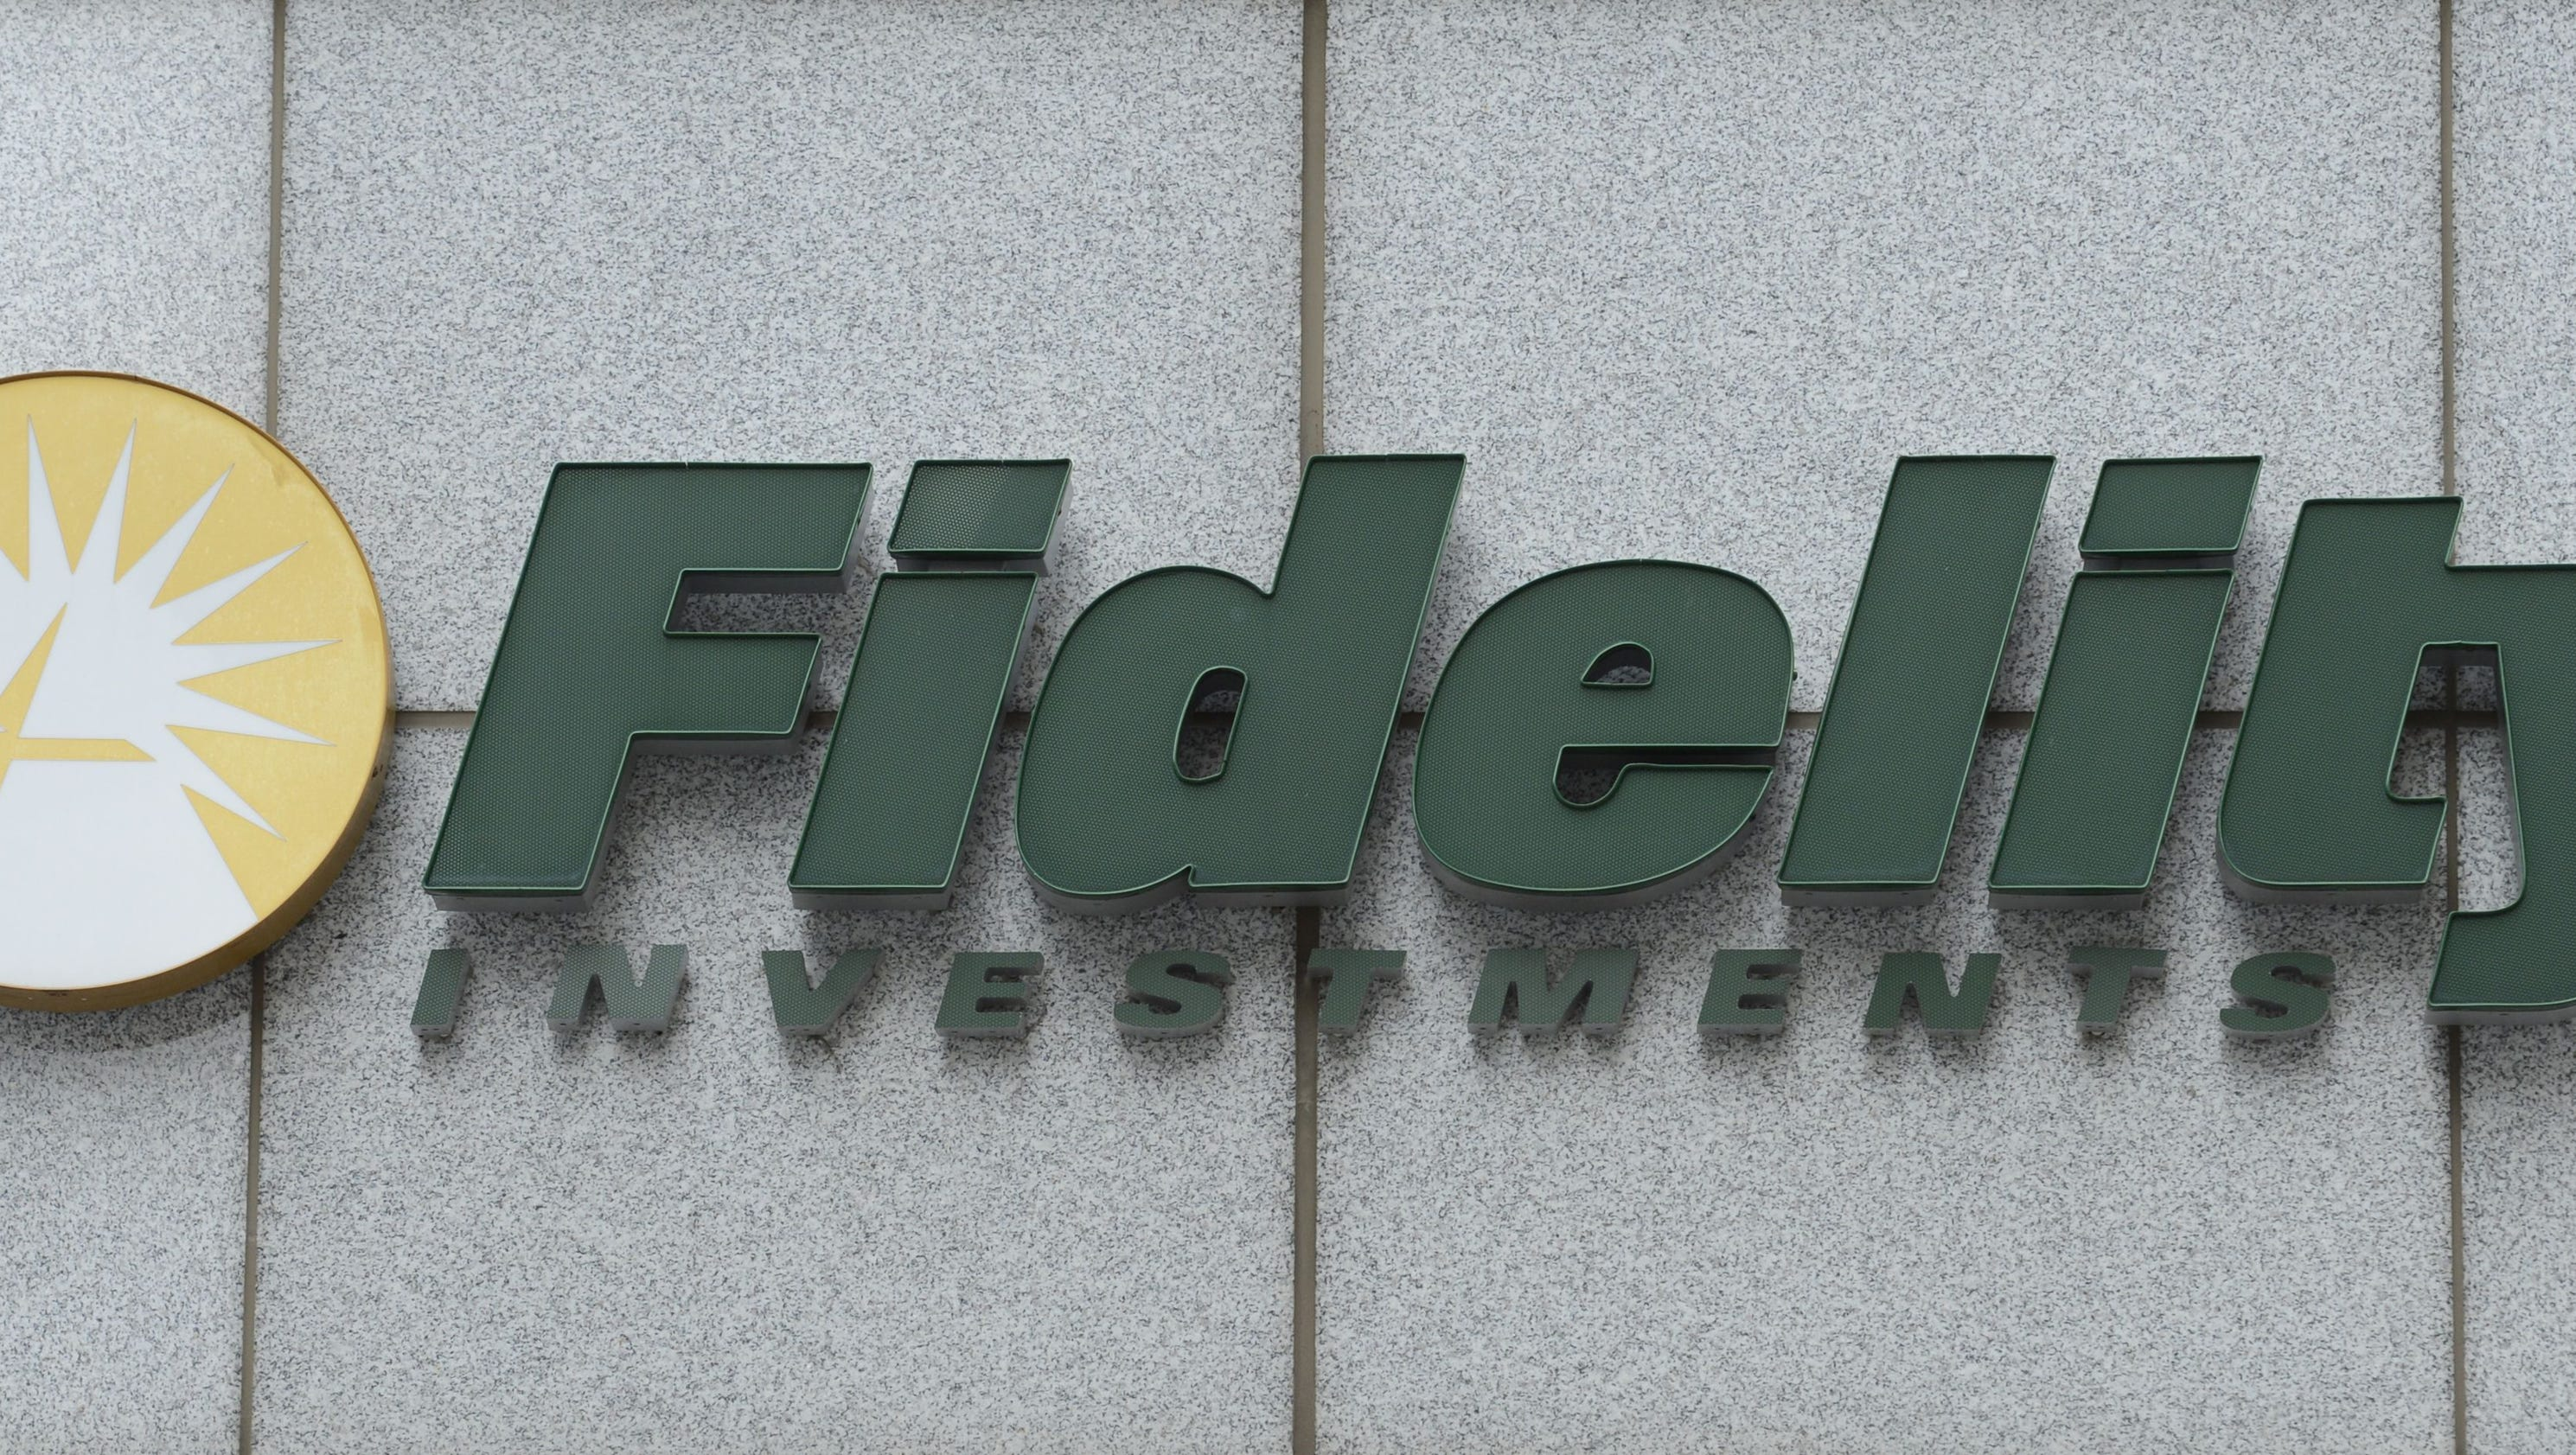 Fidelity Stock Quotes Fidelity And Schwab Cut Costs As Price War In Online Stock Trading